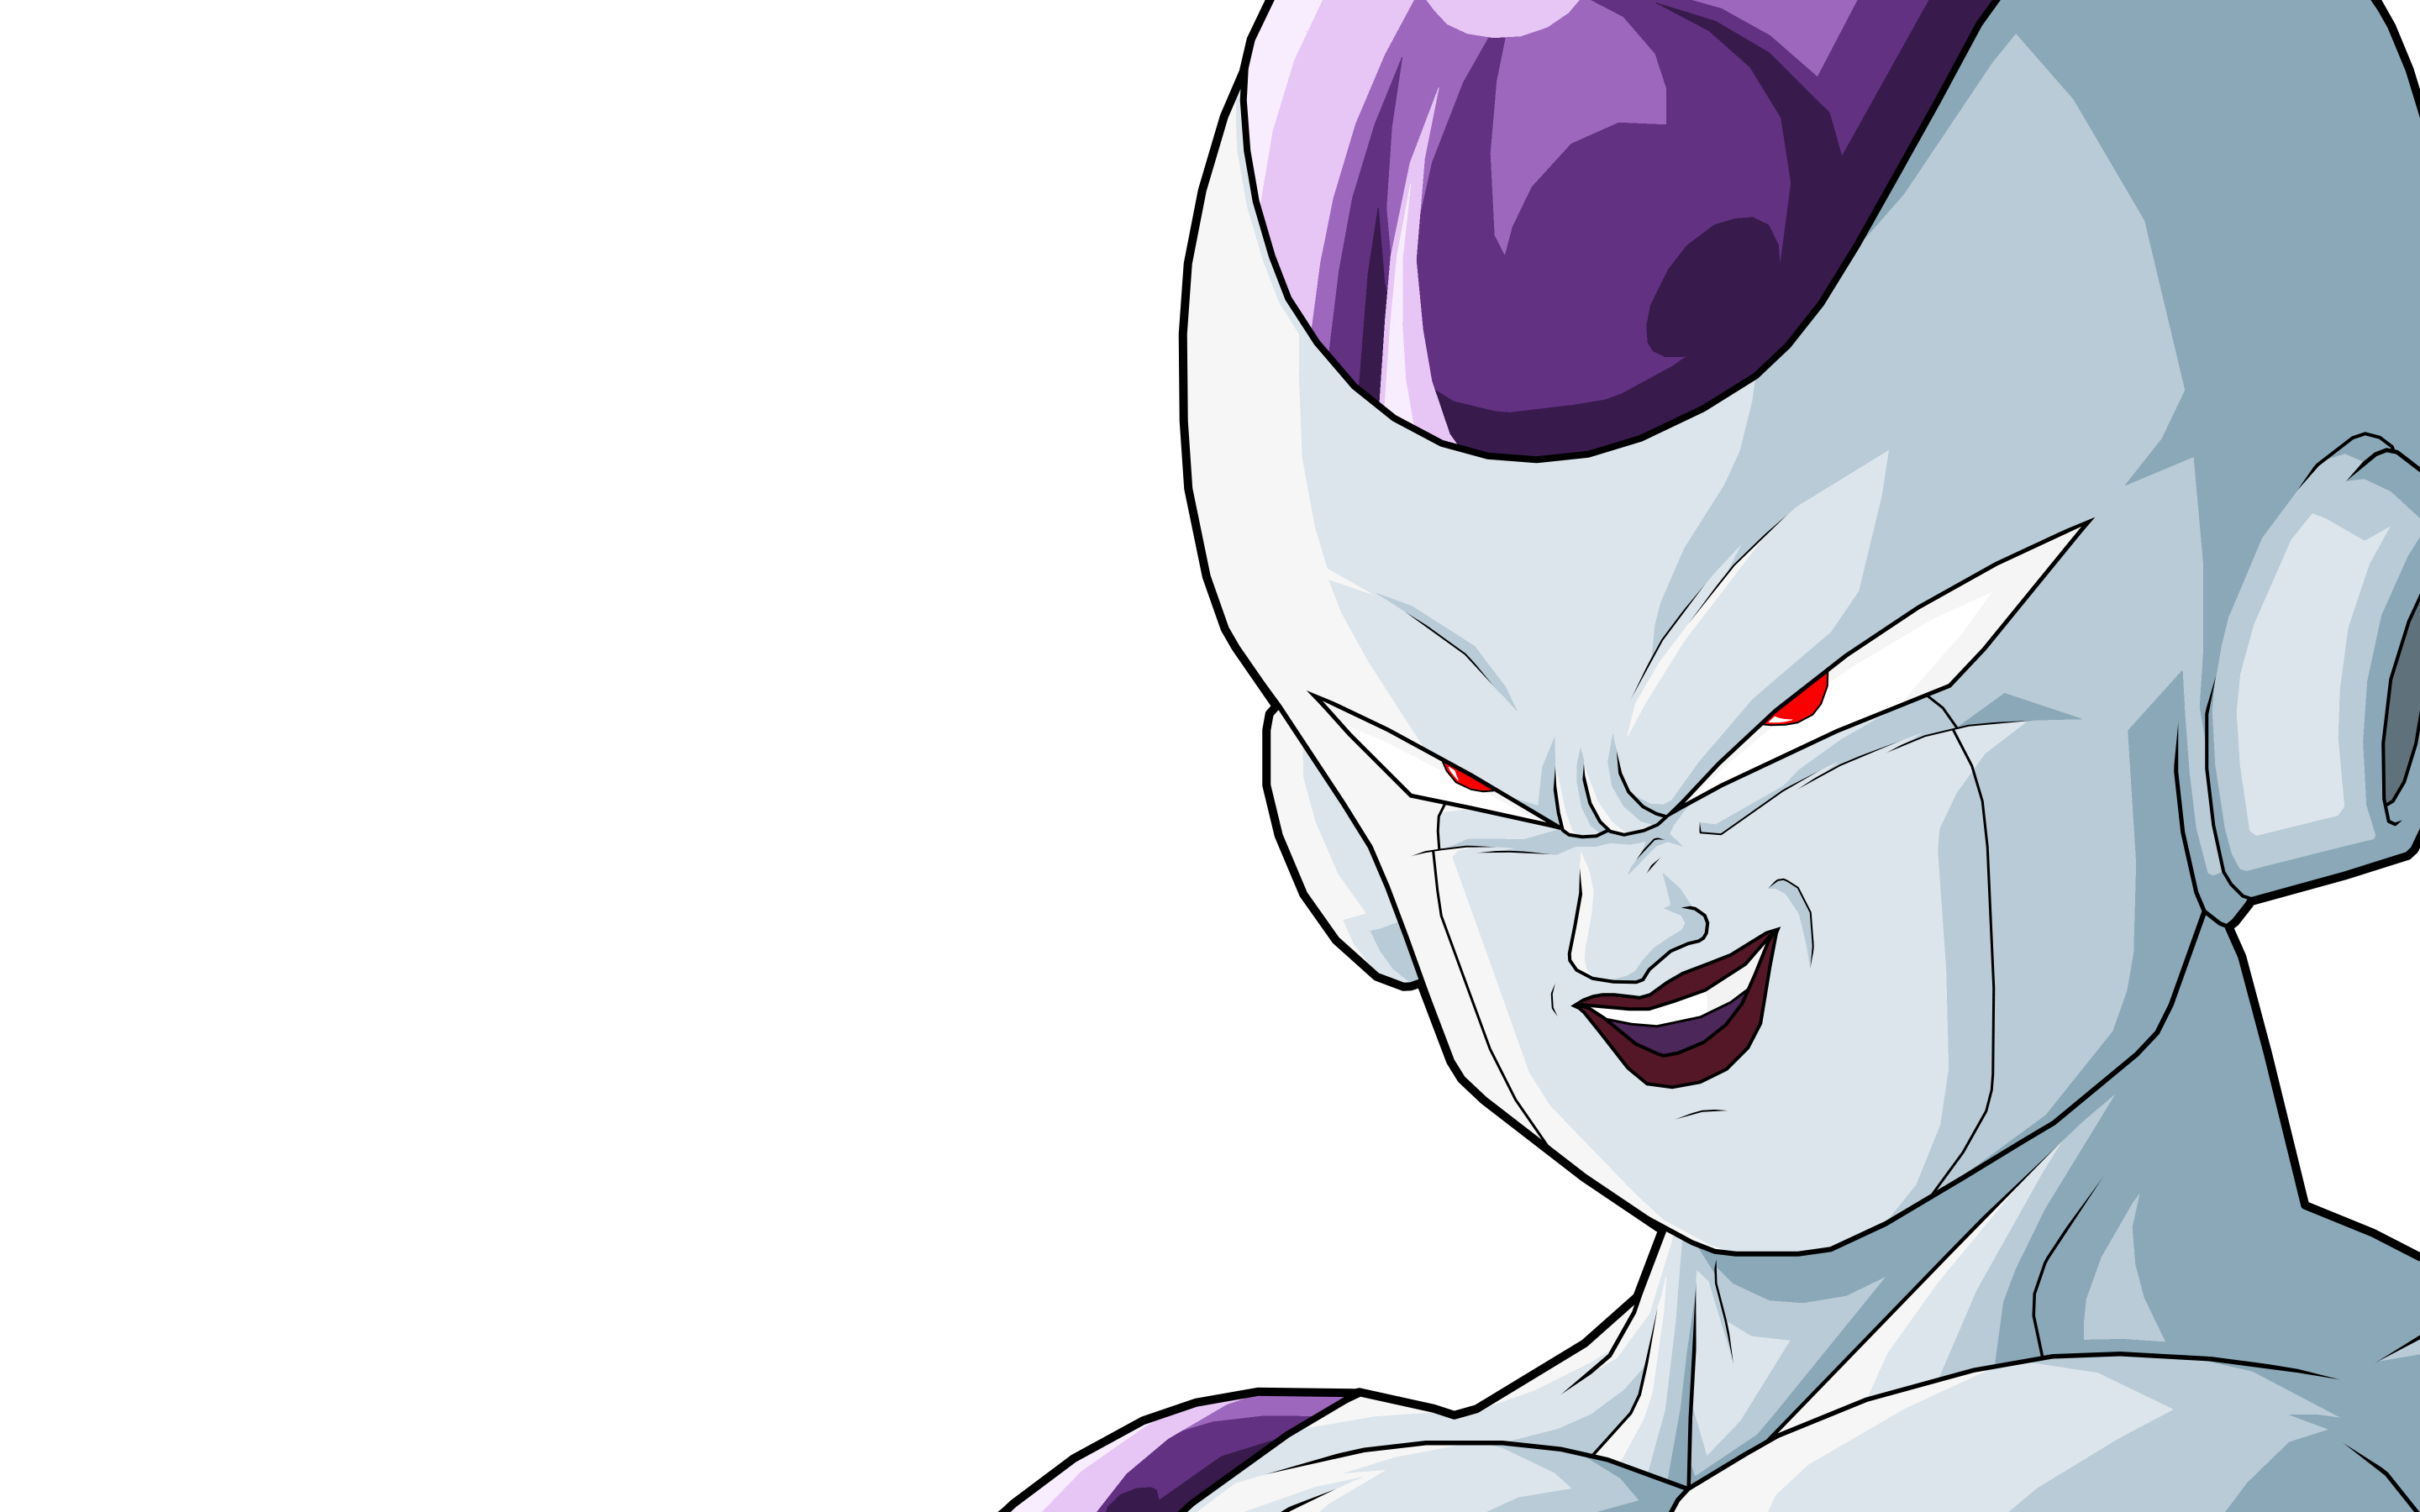 Frieza dragon ball z wallpaper 2880x1800 16921 - Dragon ball super background music mp3 download ...